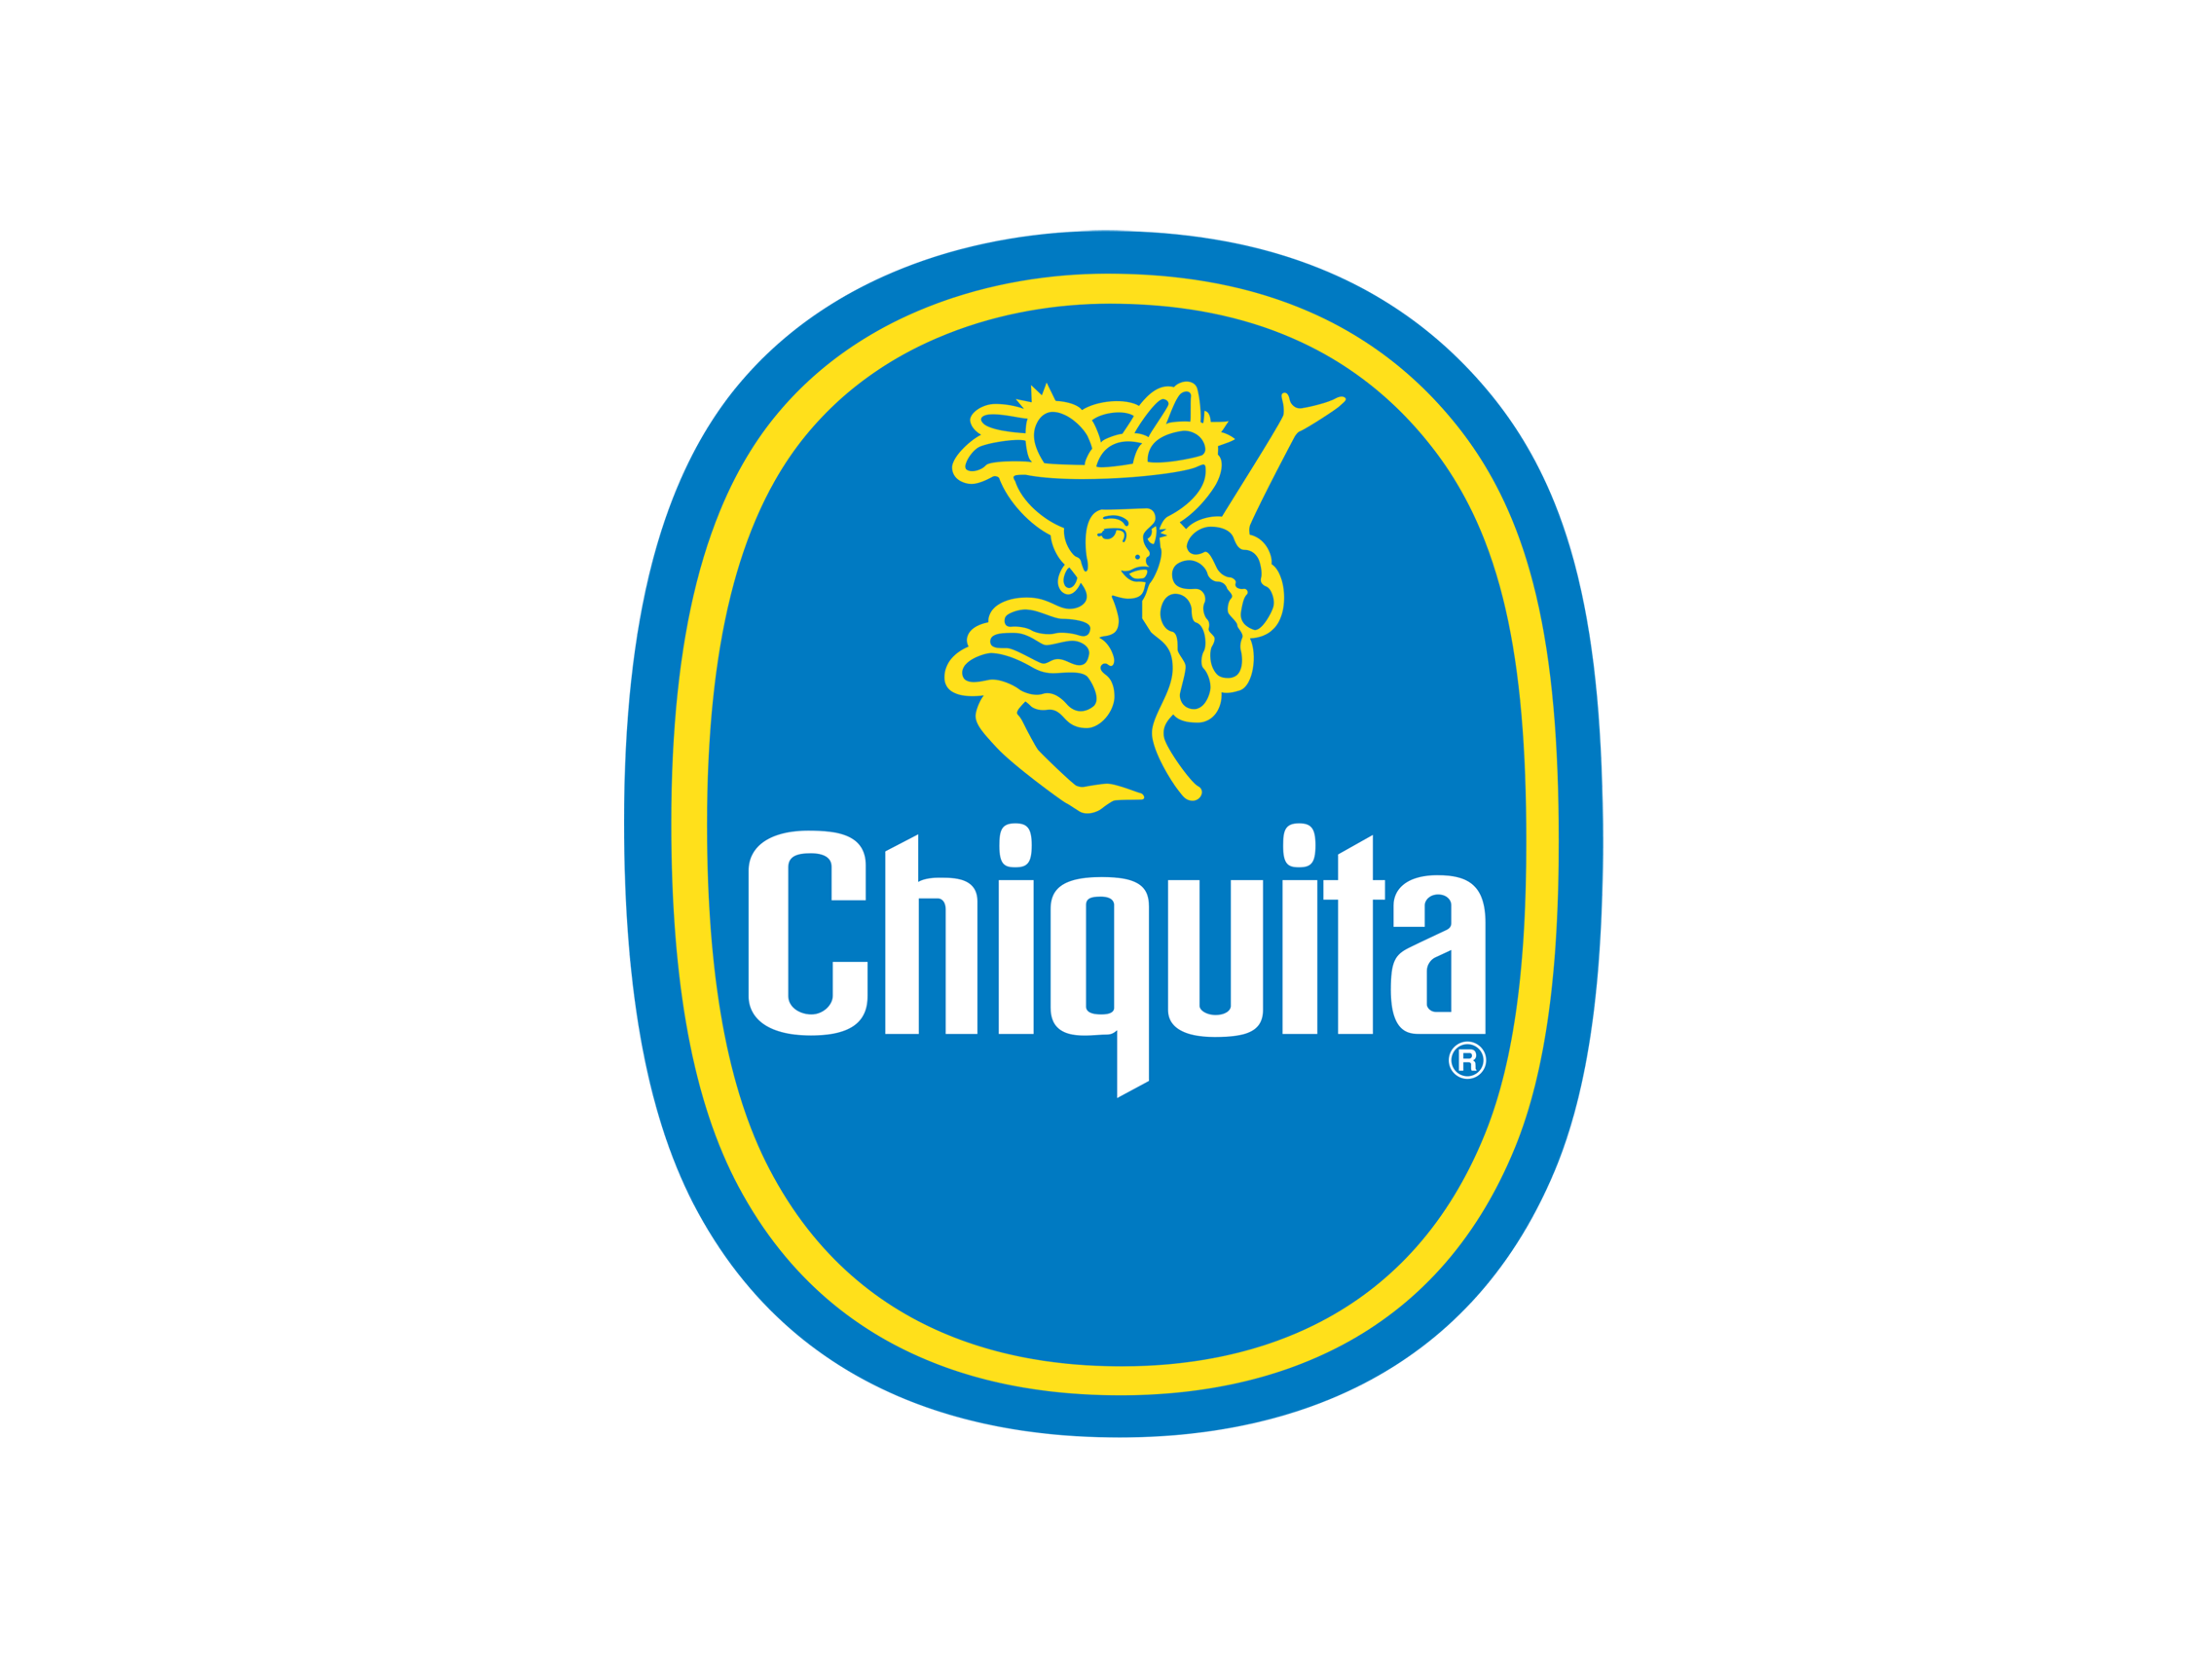 Chiquita Old Logo Wallpaper